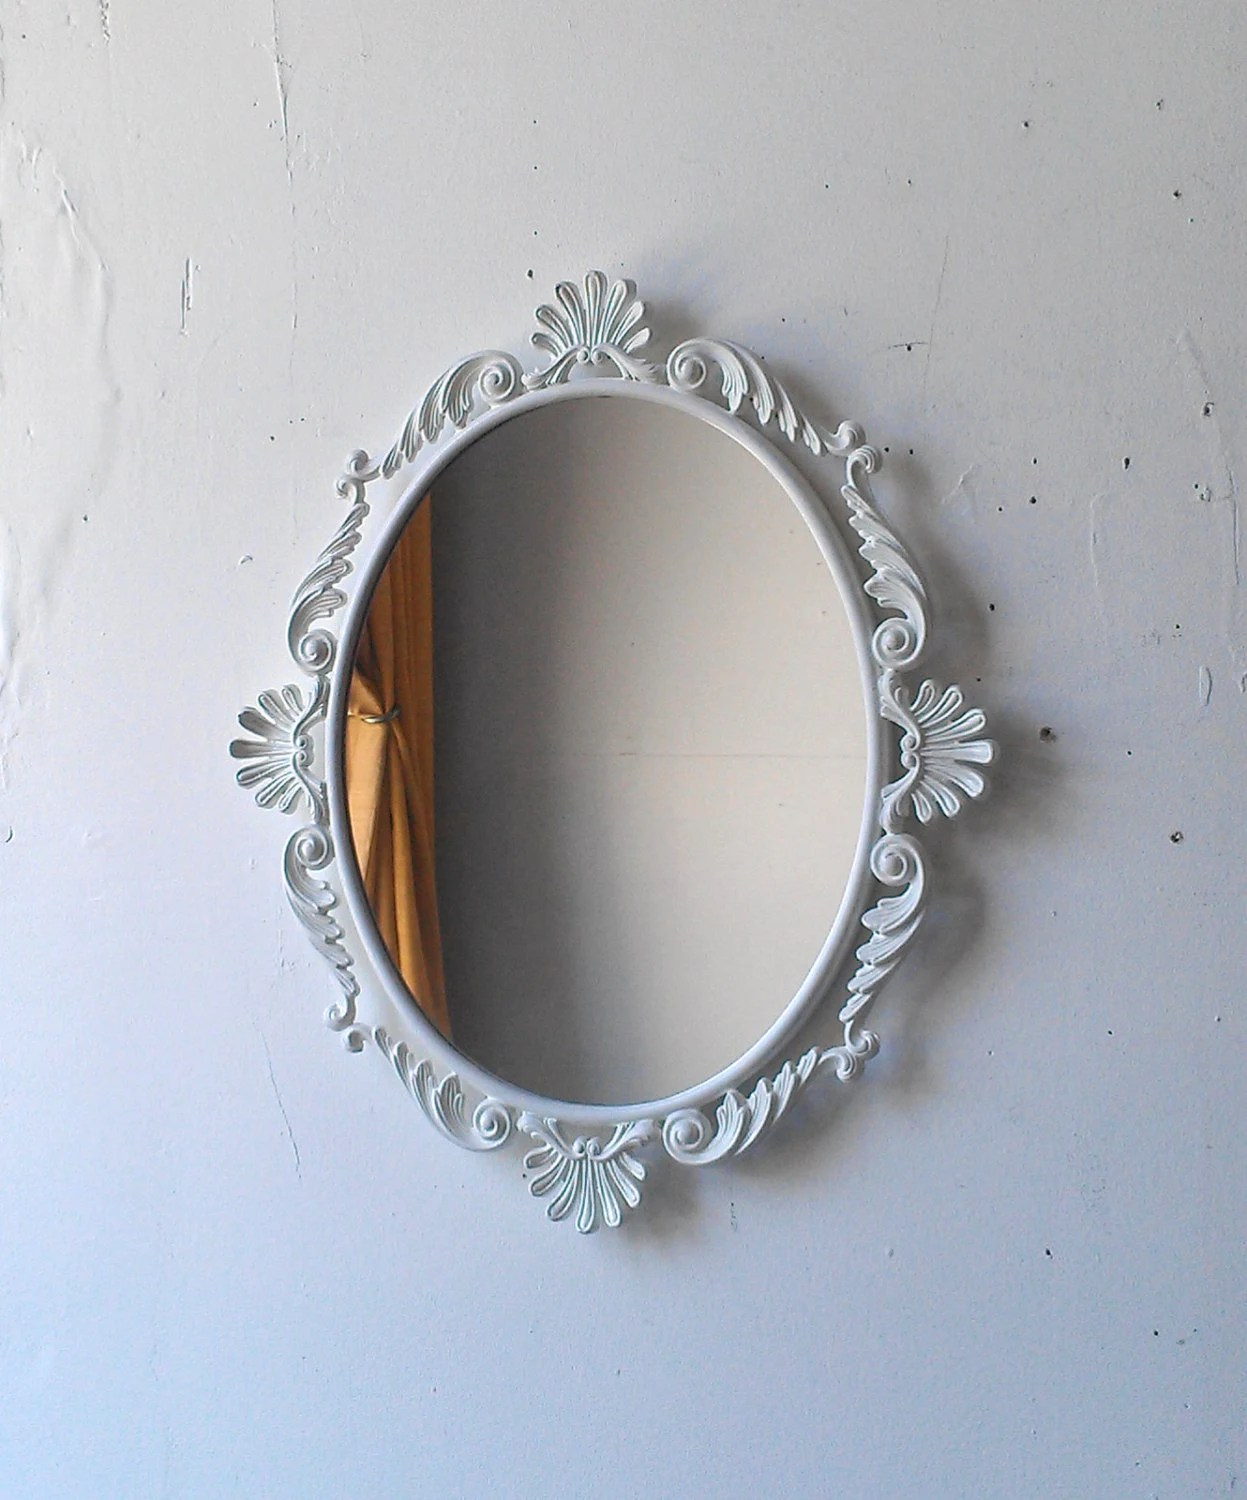 Vintage Wall Mirrors And Upcycled Home By SecretWindowMirrors